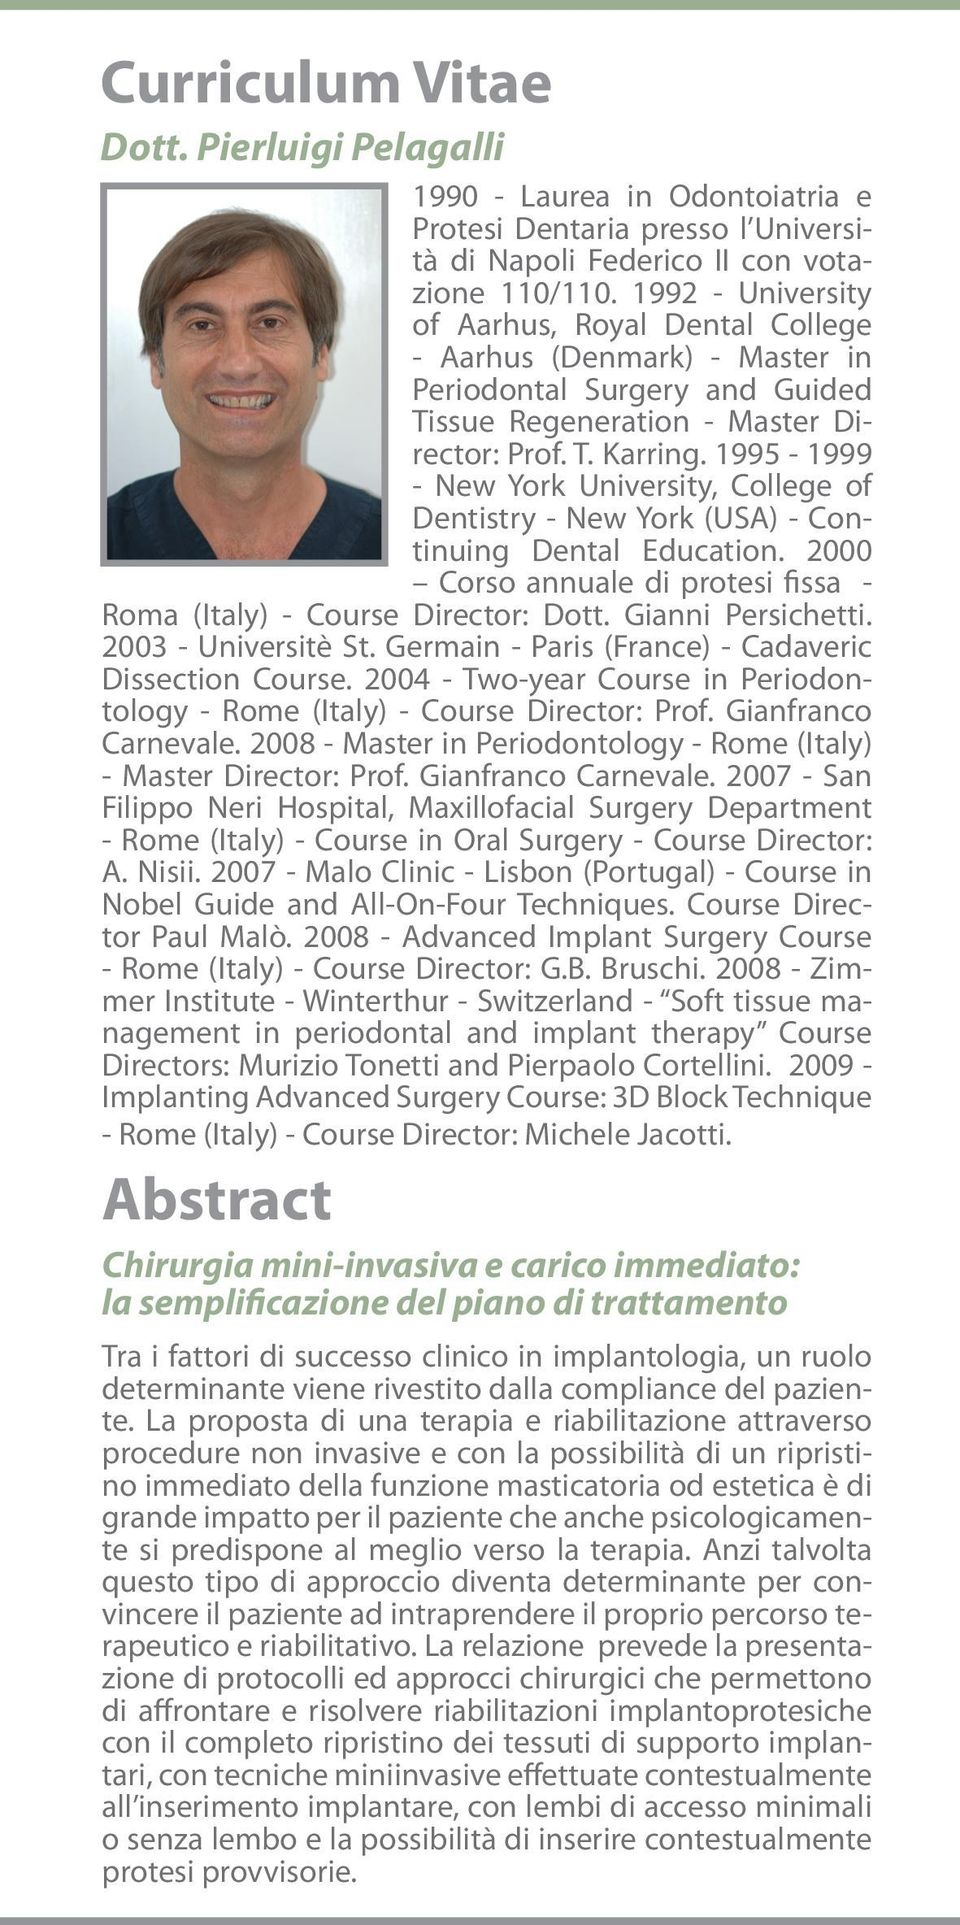 1995-1999 - New York University, College of Dentistry - New York (USA) - Continuing Dental Education. 2000 Corso annuale di protesi fissa - Roma (Italy) - Course Director: Dott. Gianni Persichetti.